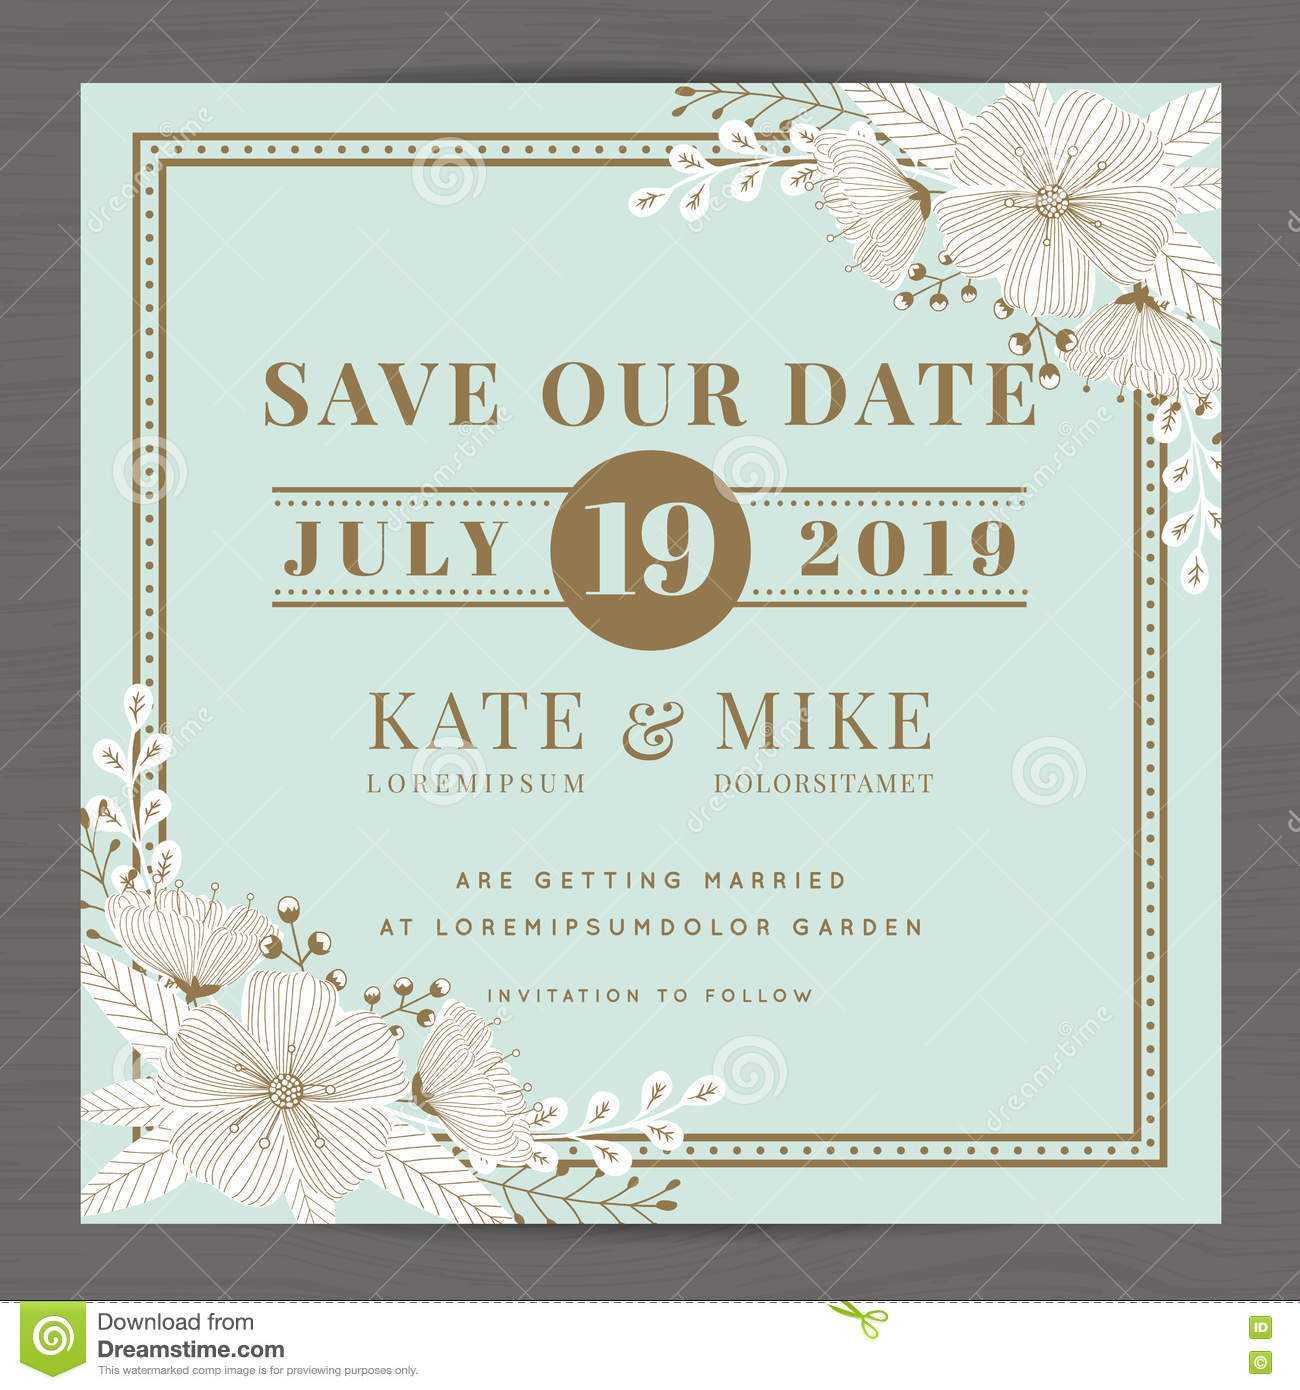 Save The Date Wedding Invitation Card Template With Hand Drawn Flower Floral Background